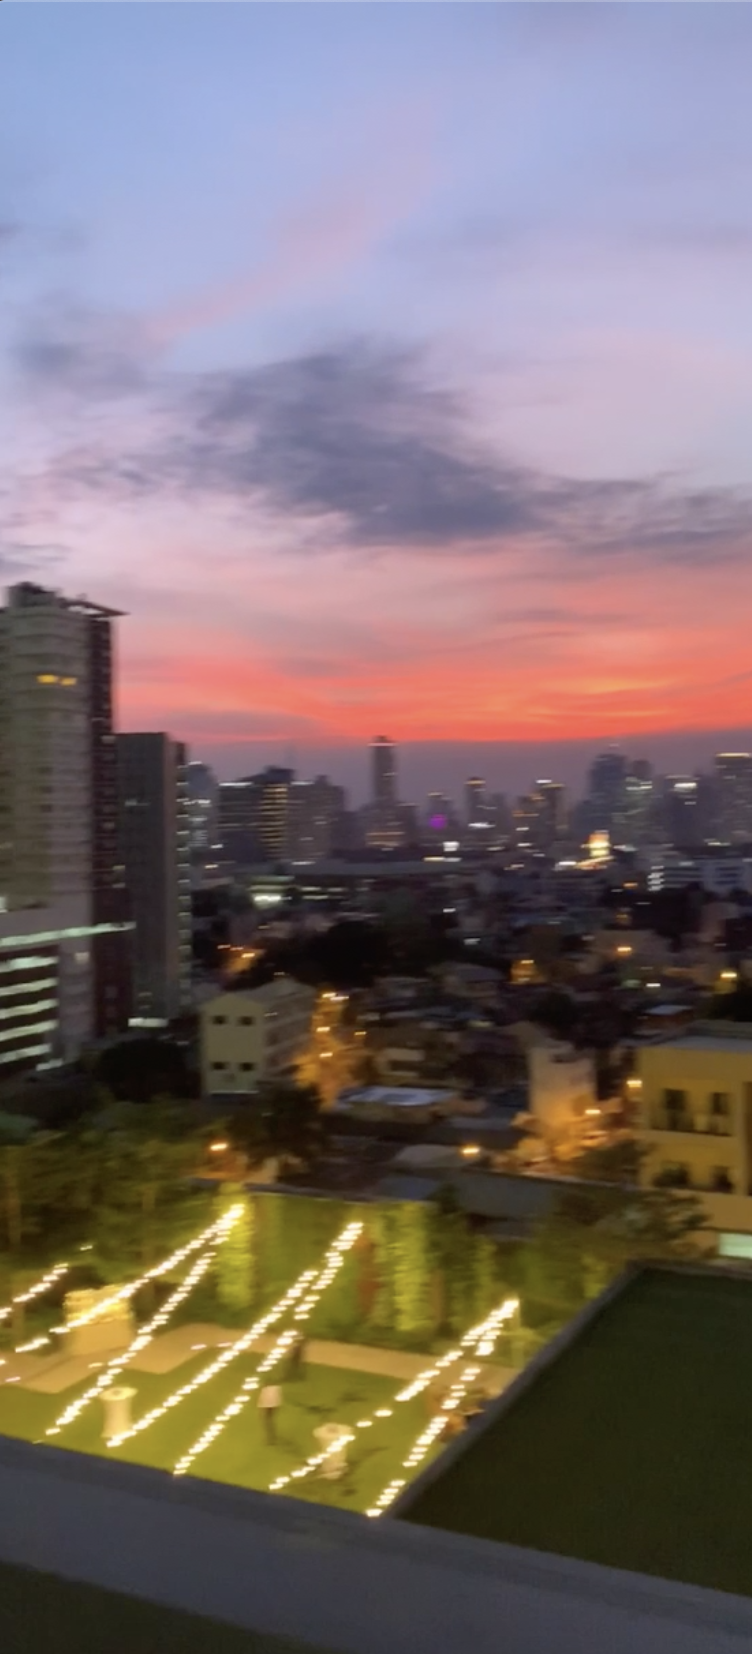 Watching the Manila Sunsets While Inhaling Smog (Air Pollution in the Philippines)